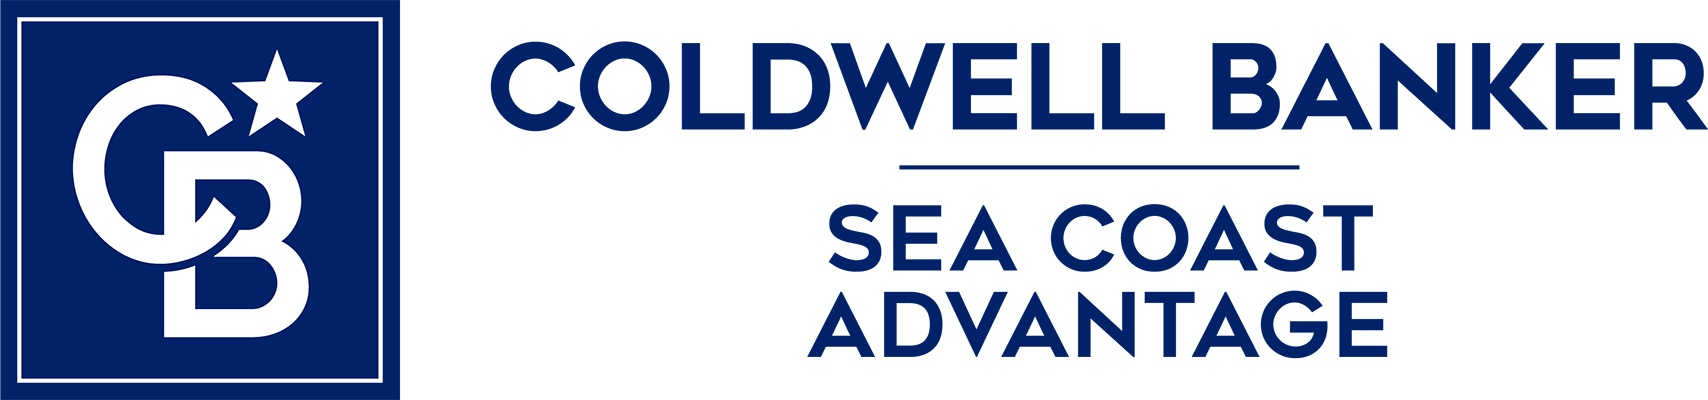 Coldwell Banker Sea Coast Advantage - Team Gale Logo